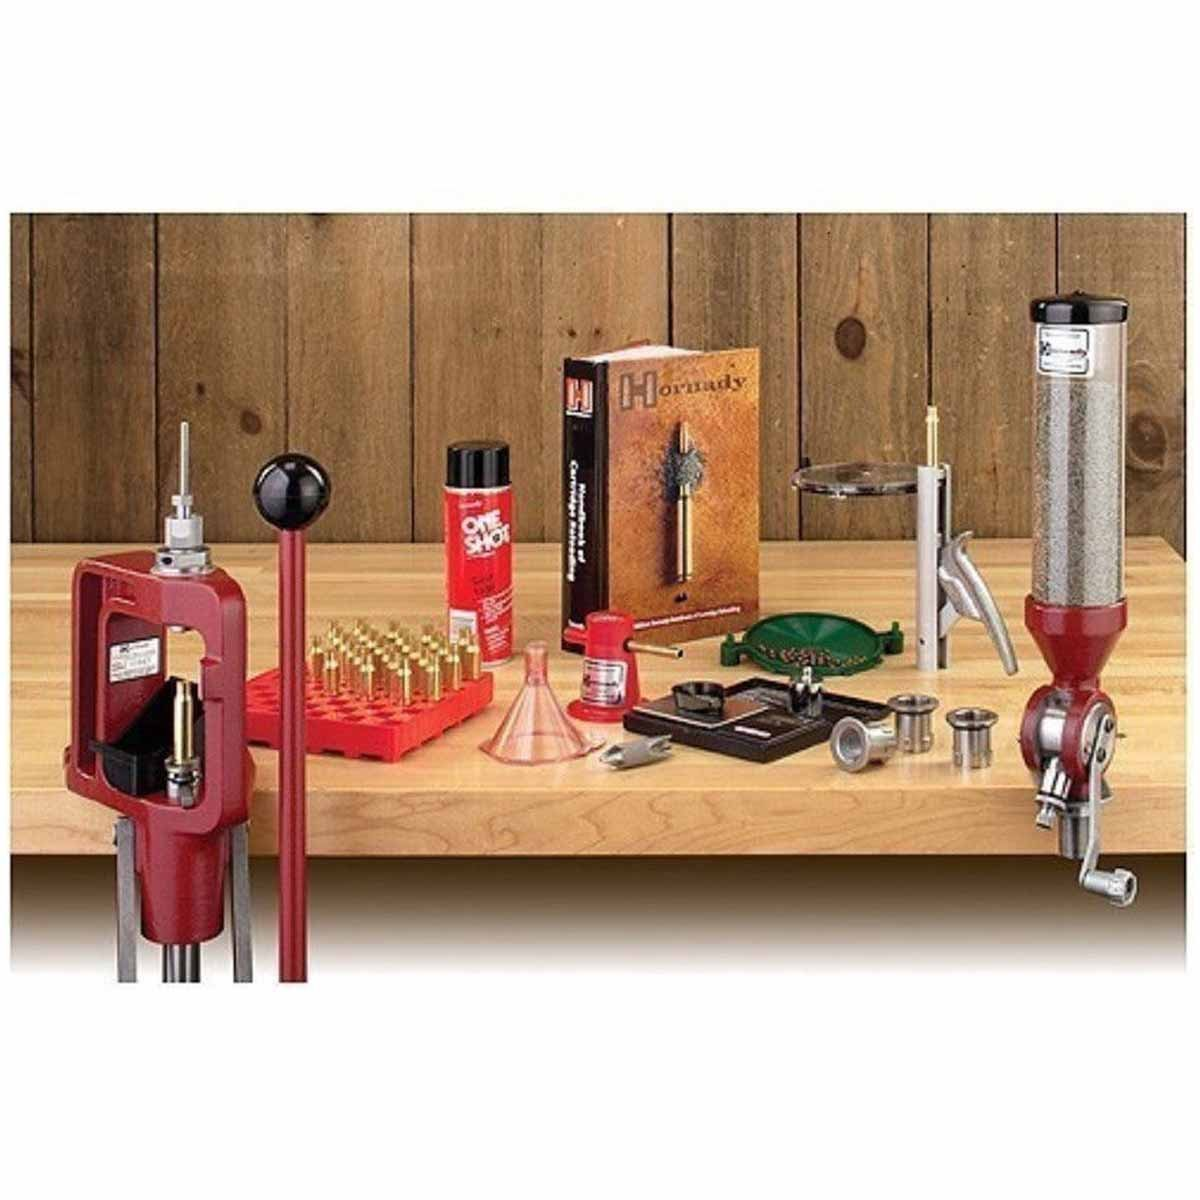 Hornady 85003 Lock N Load Classic Reloading Press Kit by Hornady (Image #1)